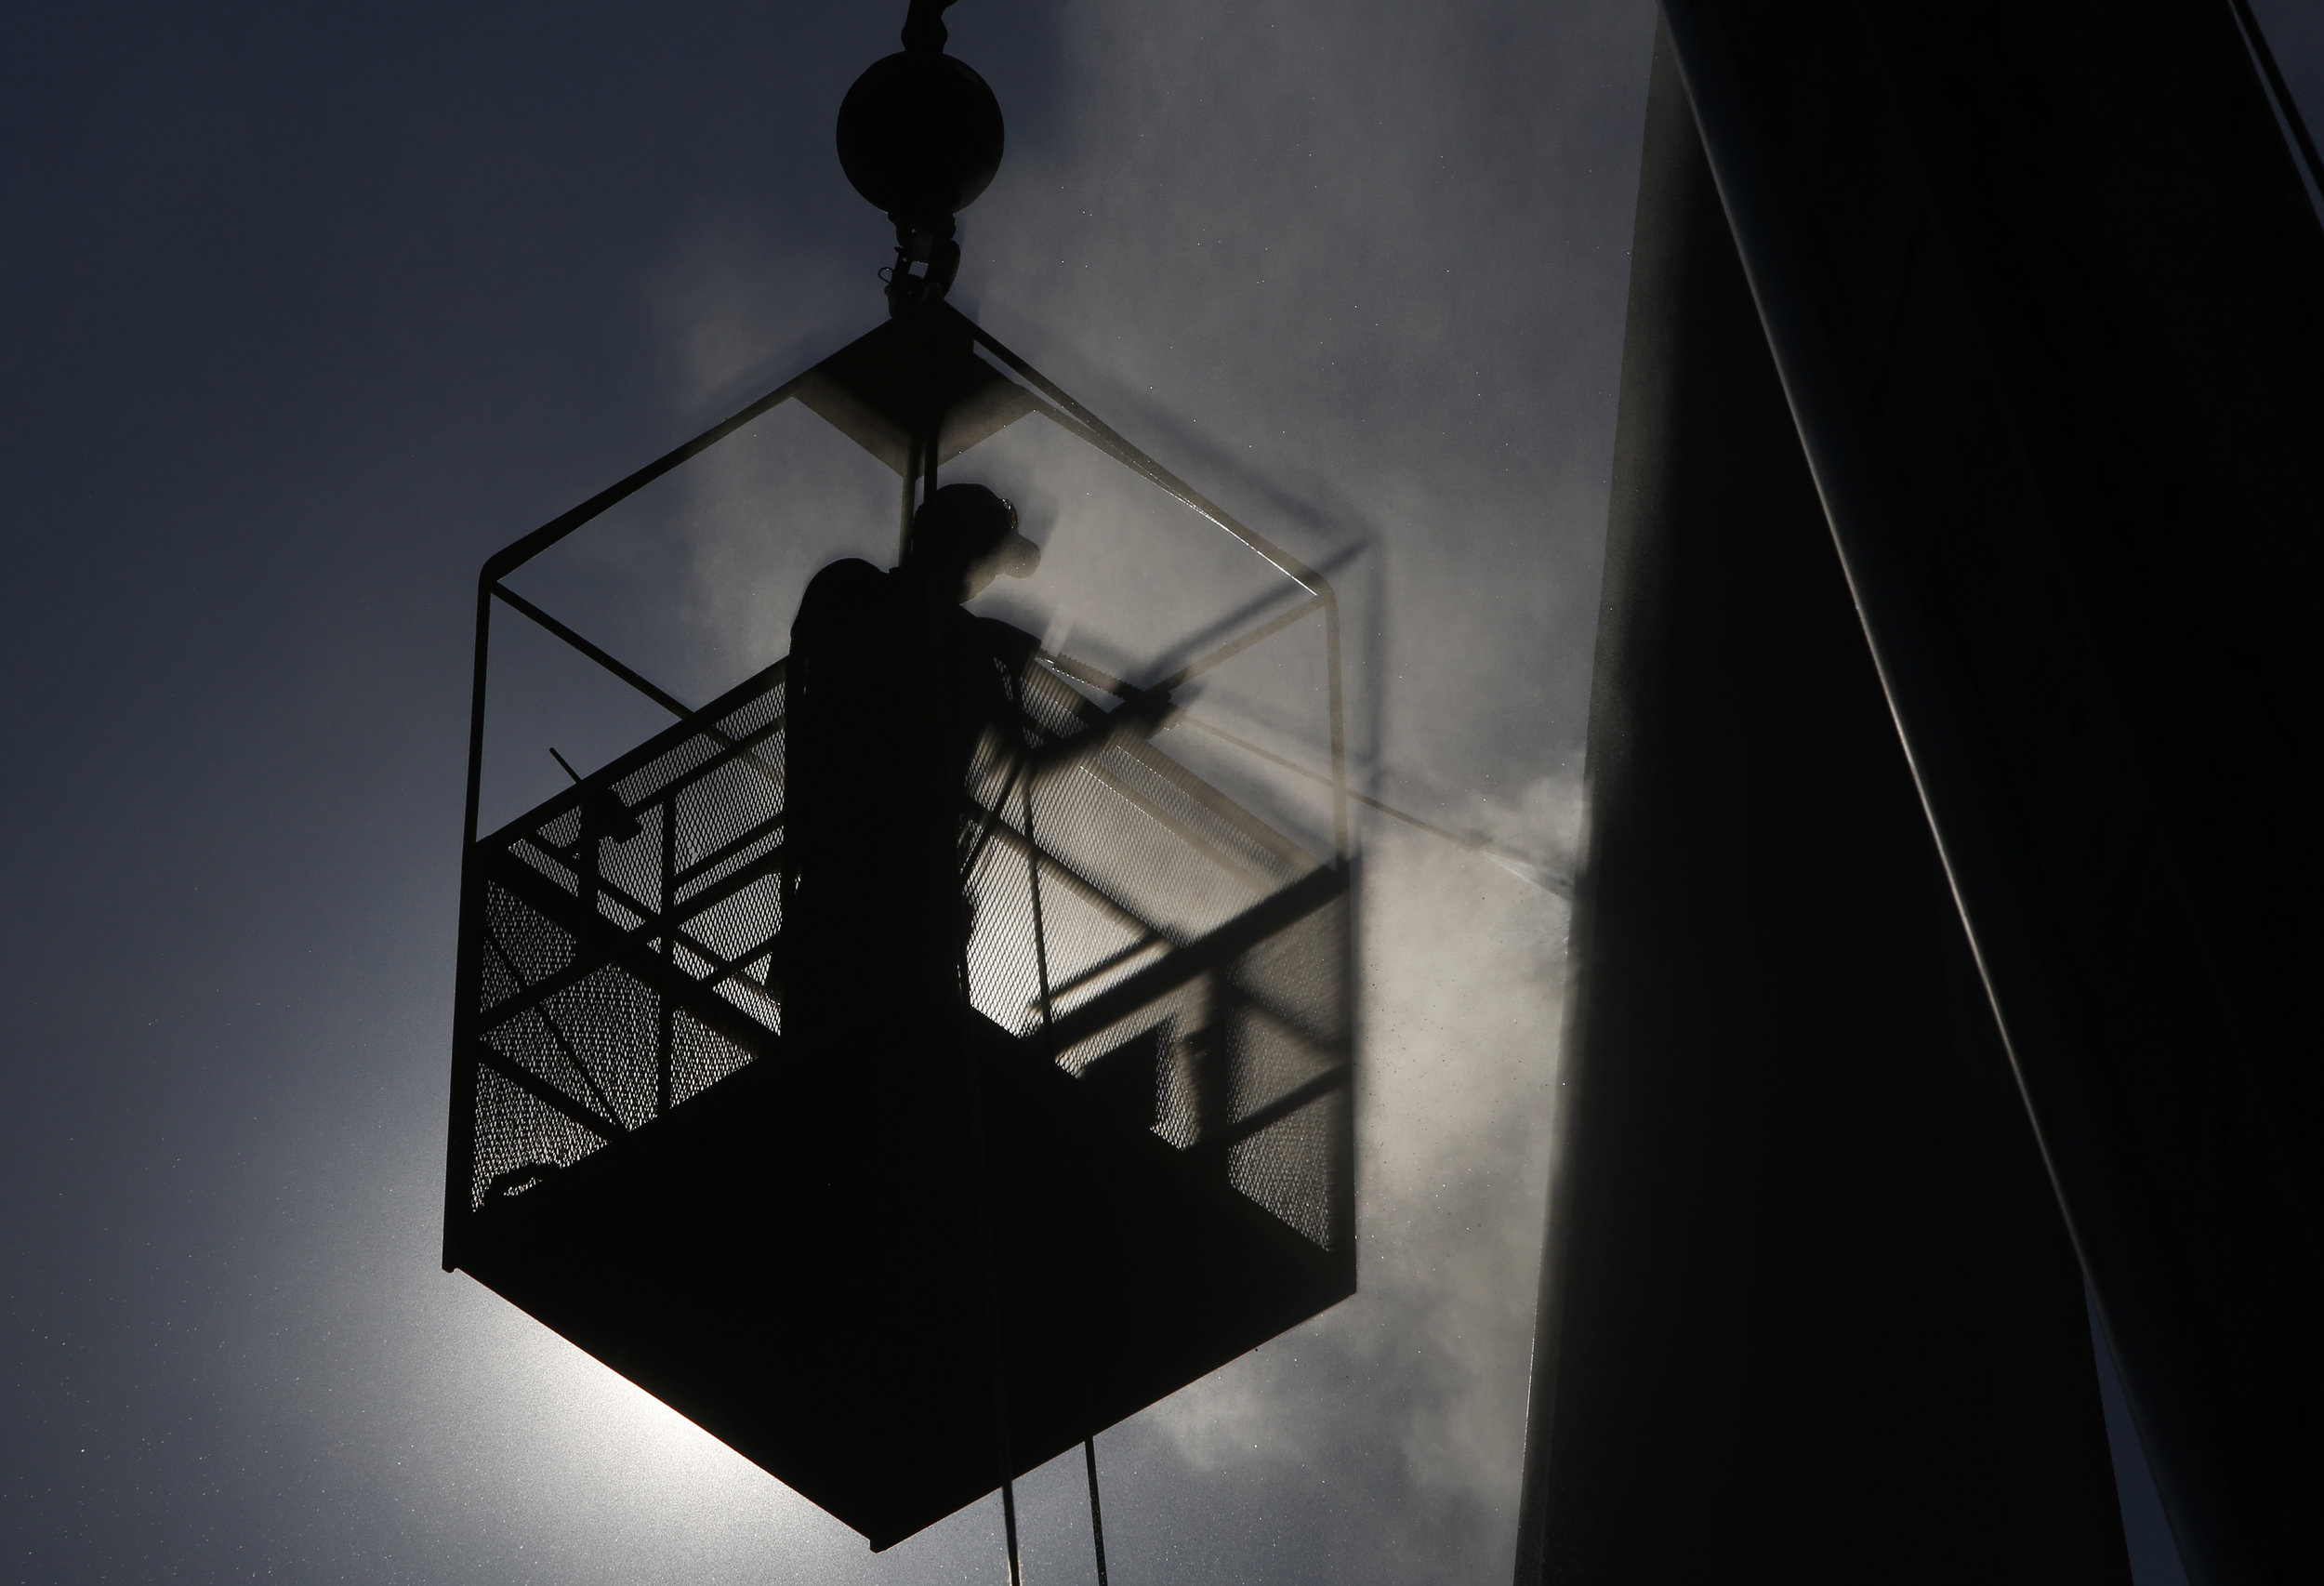 Trevor Ronan power washes the steeple at Yorkminster Presbyterian Church Wednesday, August 31, 2016. The top is approximately 80 feet from the ground. The power washing service was volunteered by Ronan's father's company, George Ronan Powerwash. Copyright: The Daily Press